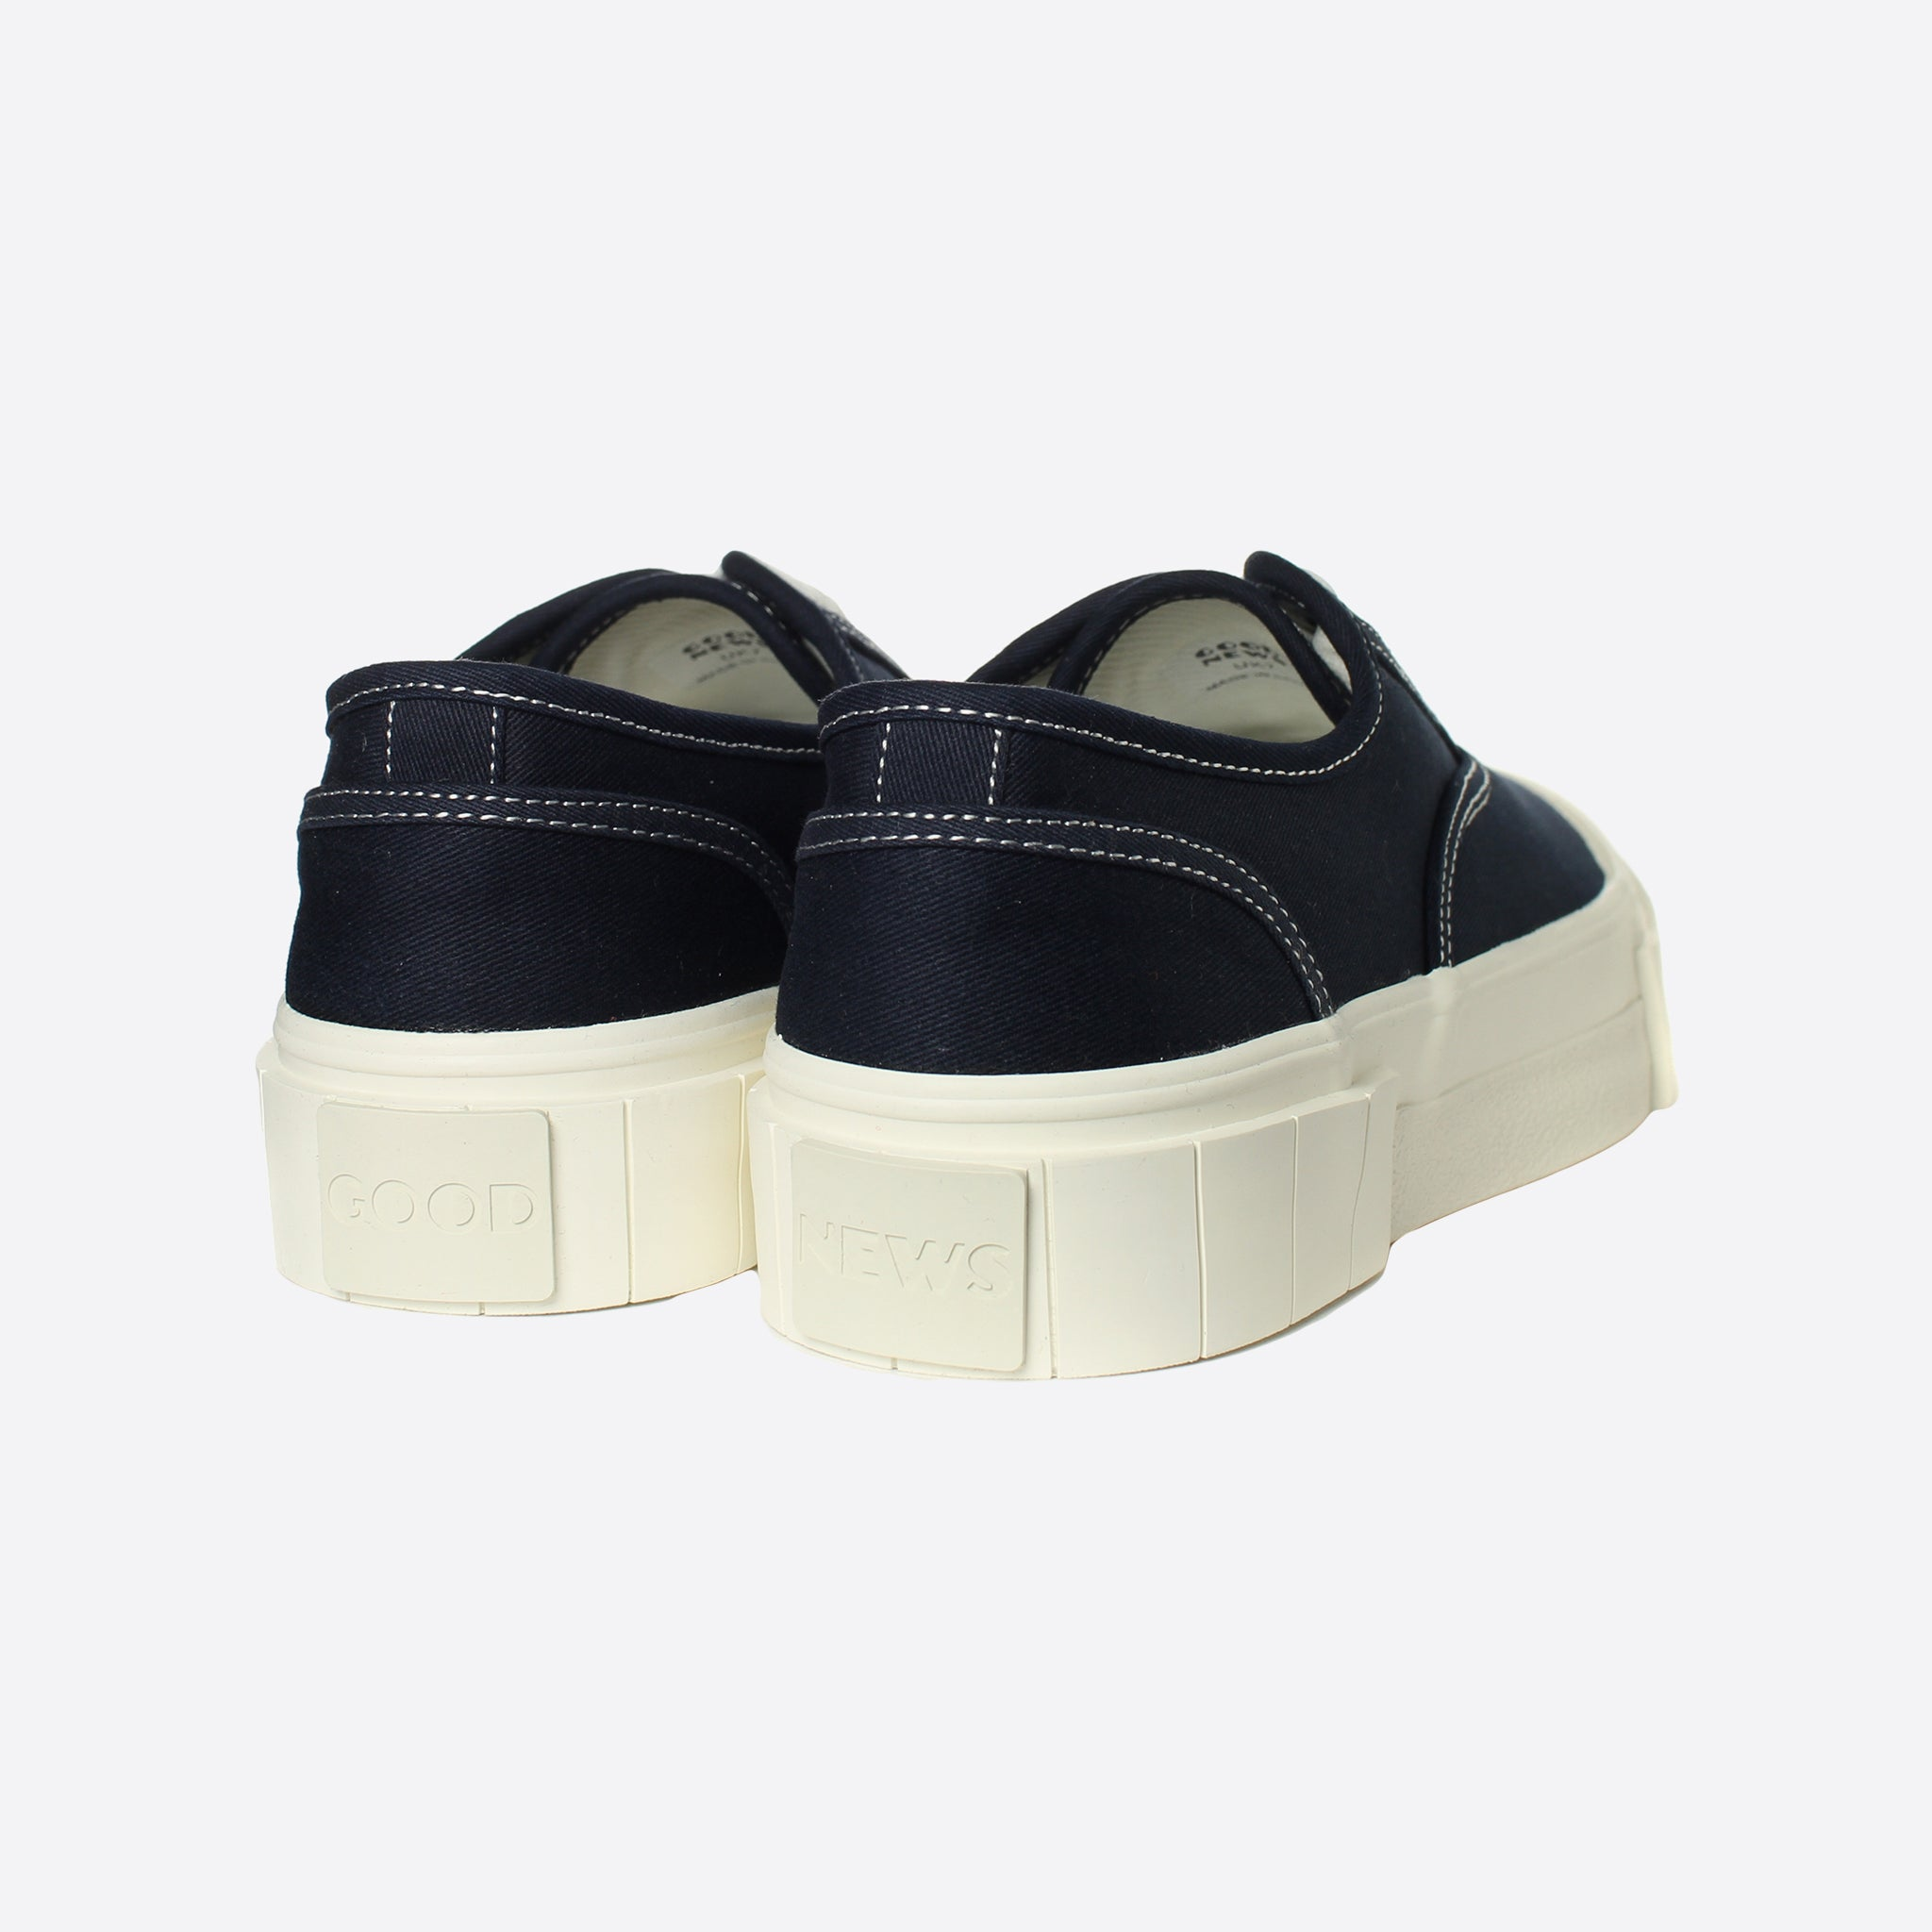 Good News Bagger 2 Low in Navy - FAULTY SIZE 9